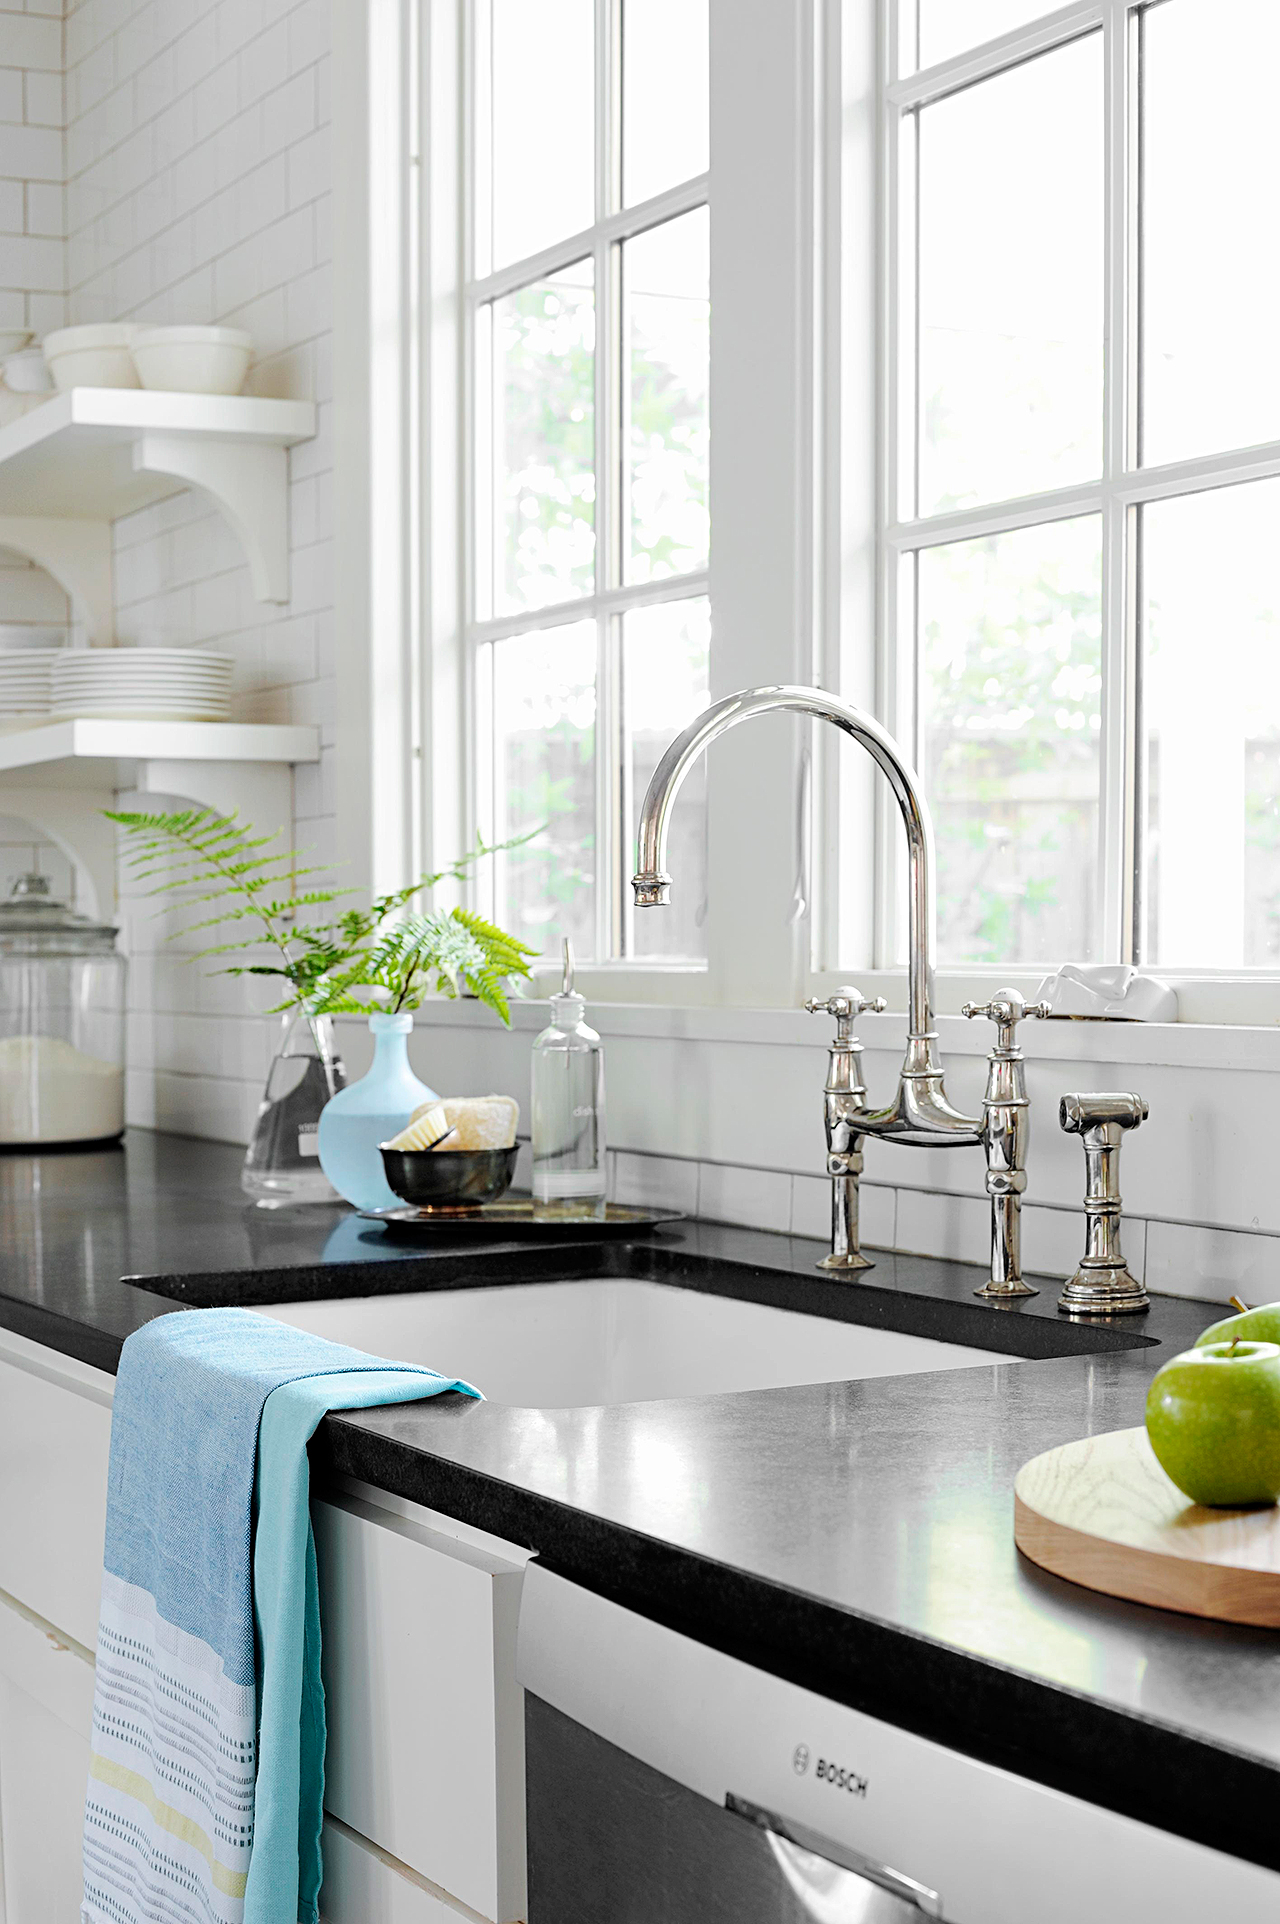 Selecting a Kitchen Sink | Better Homes & Gardens